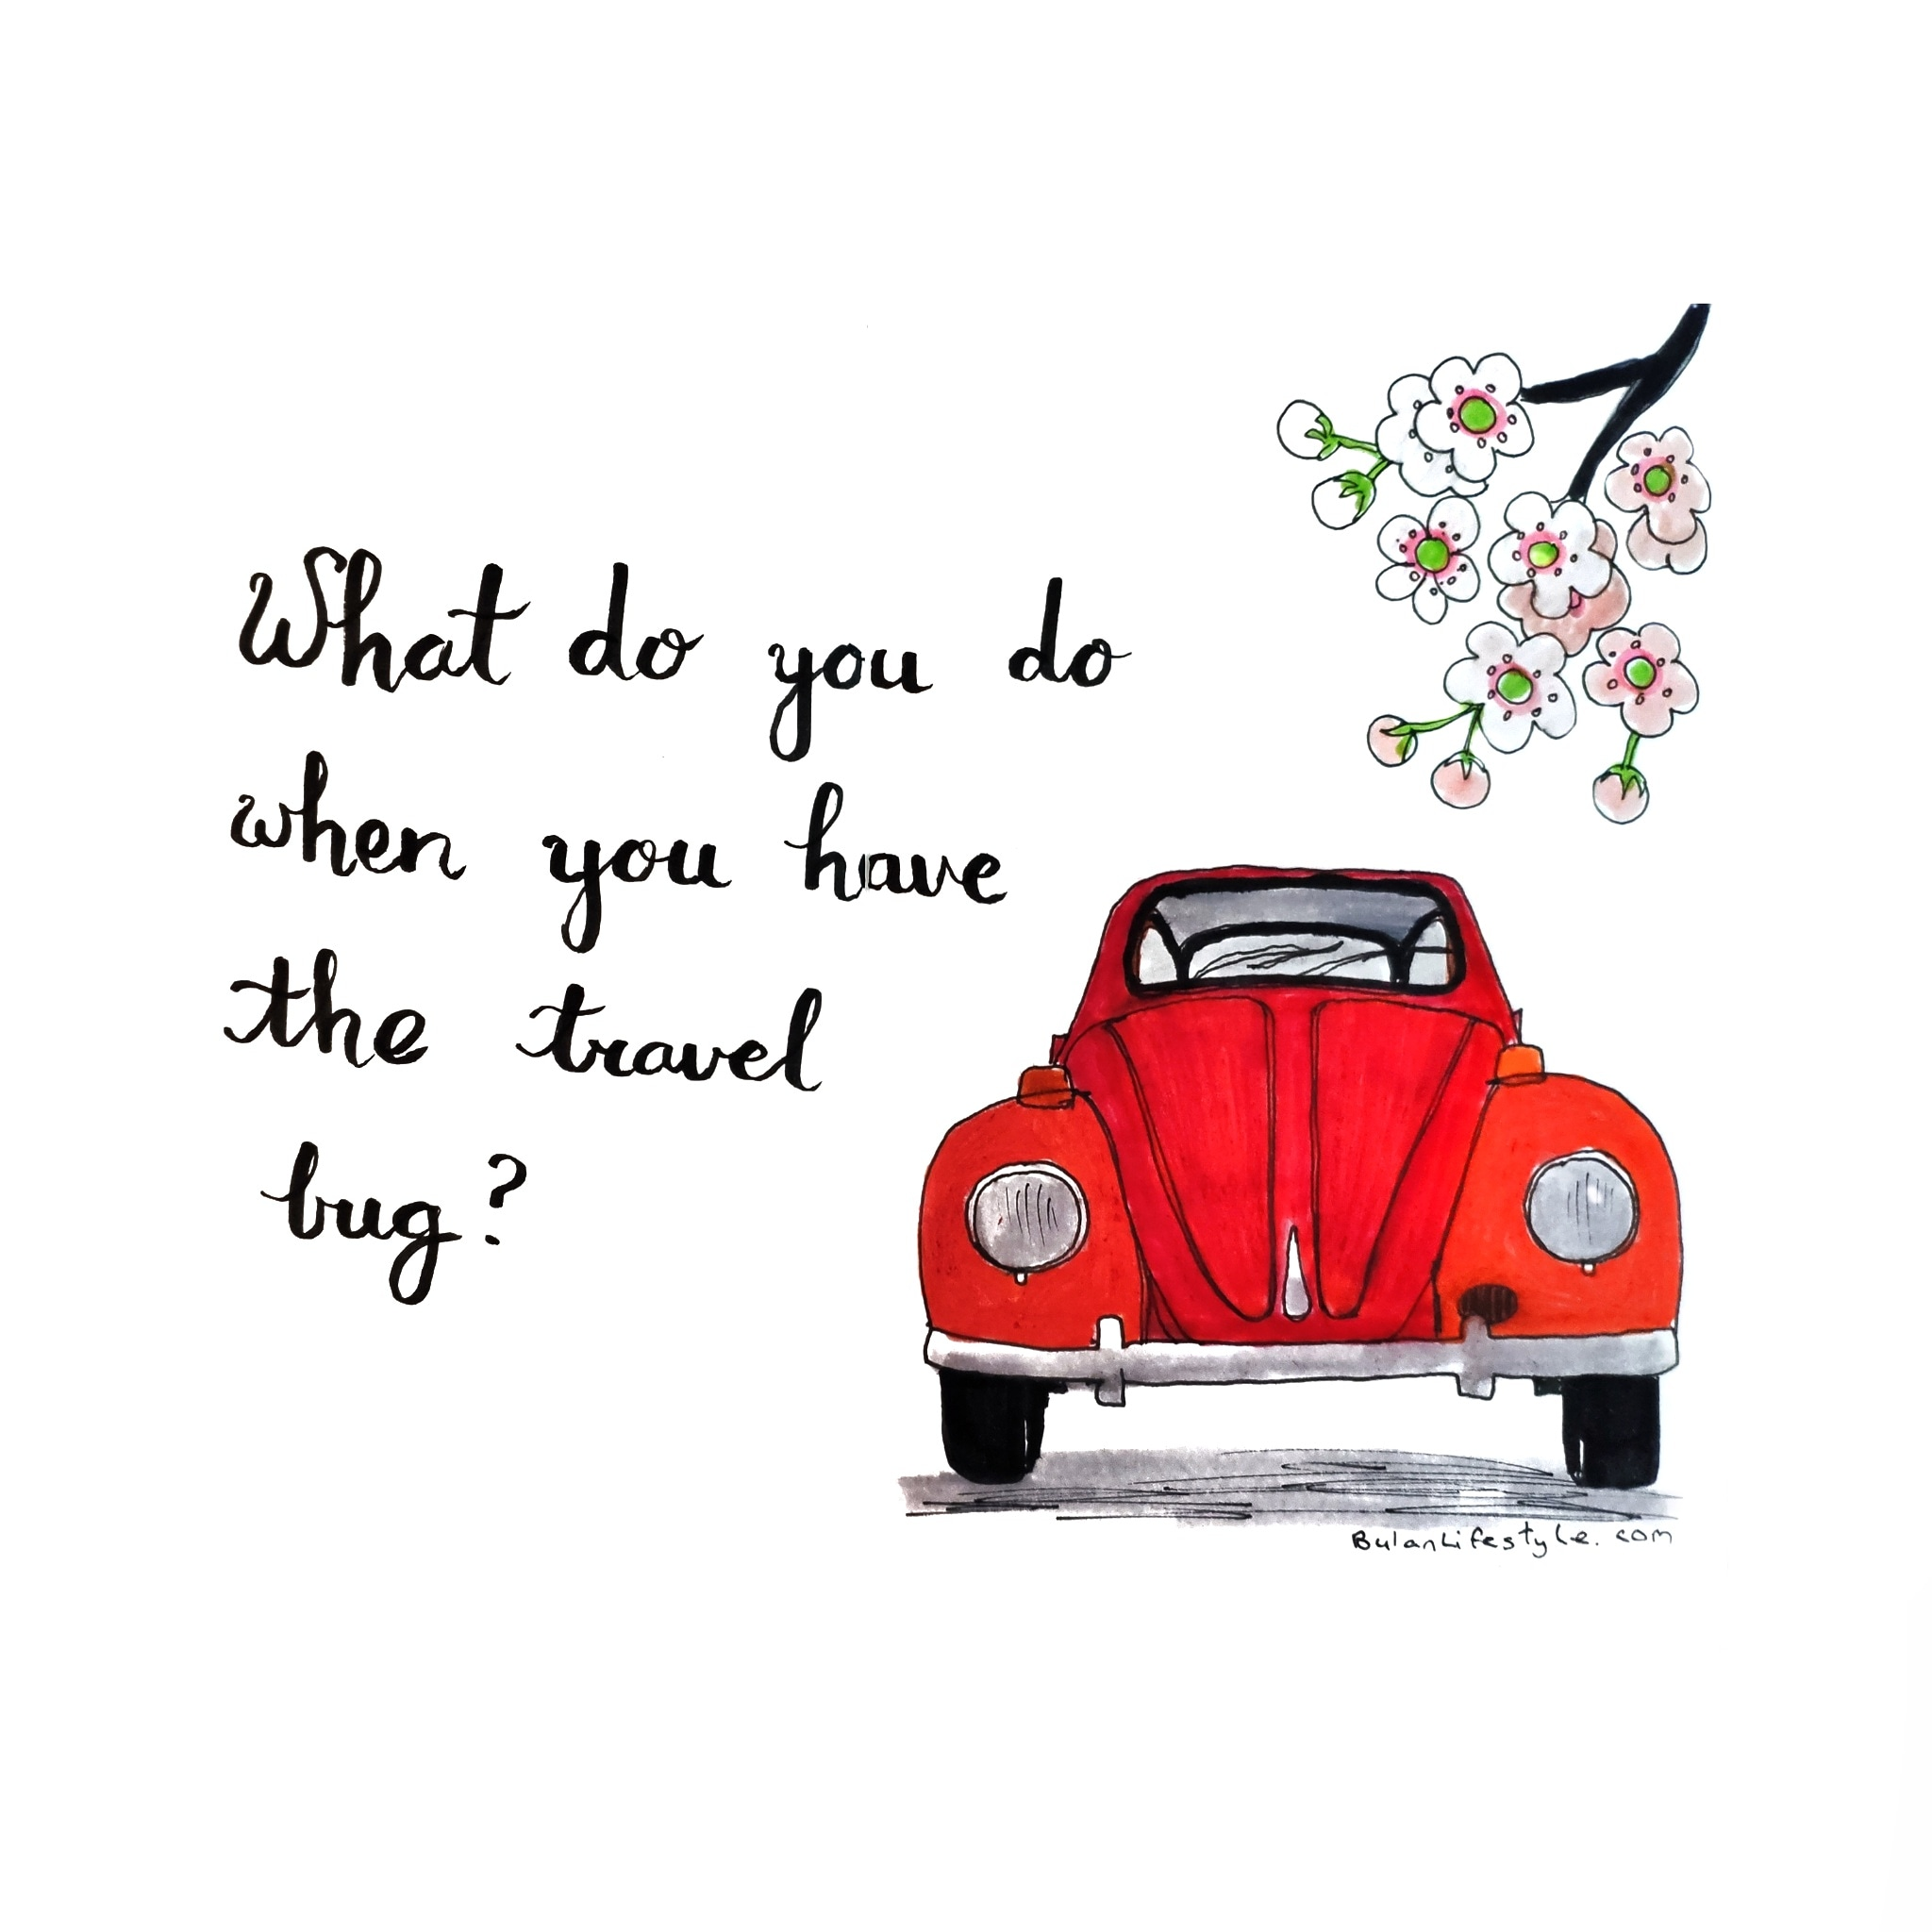 What do you do when you have the travel bug?